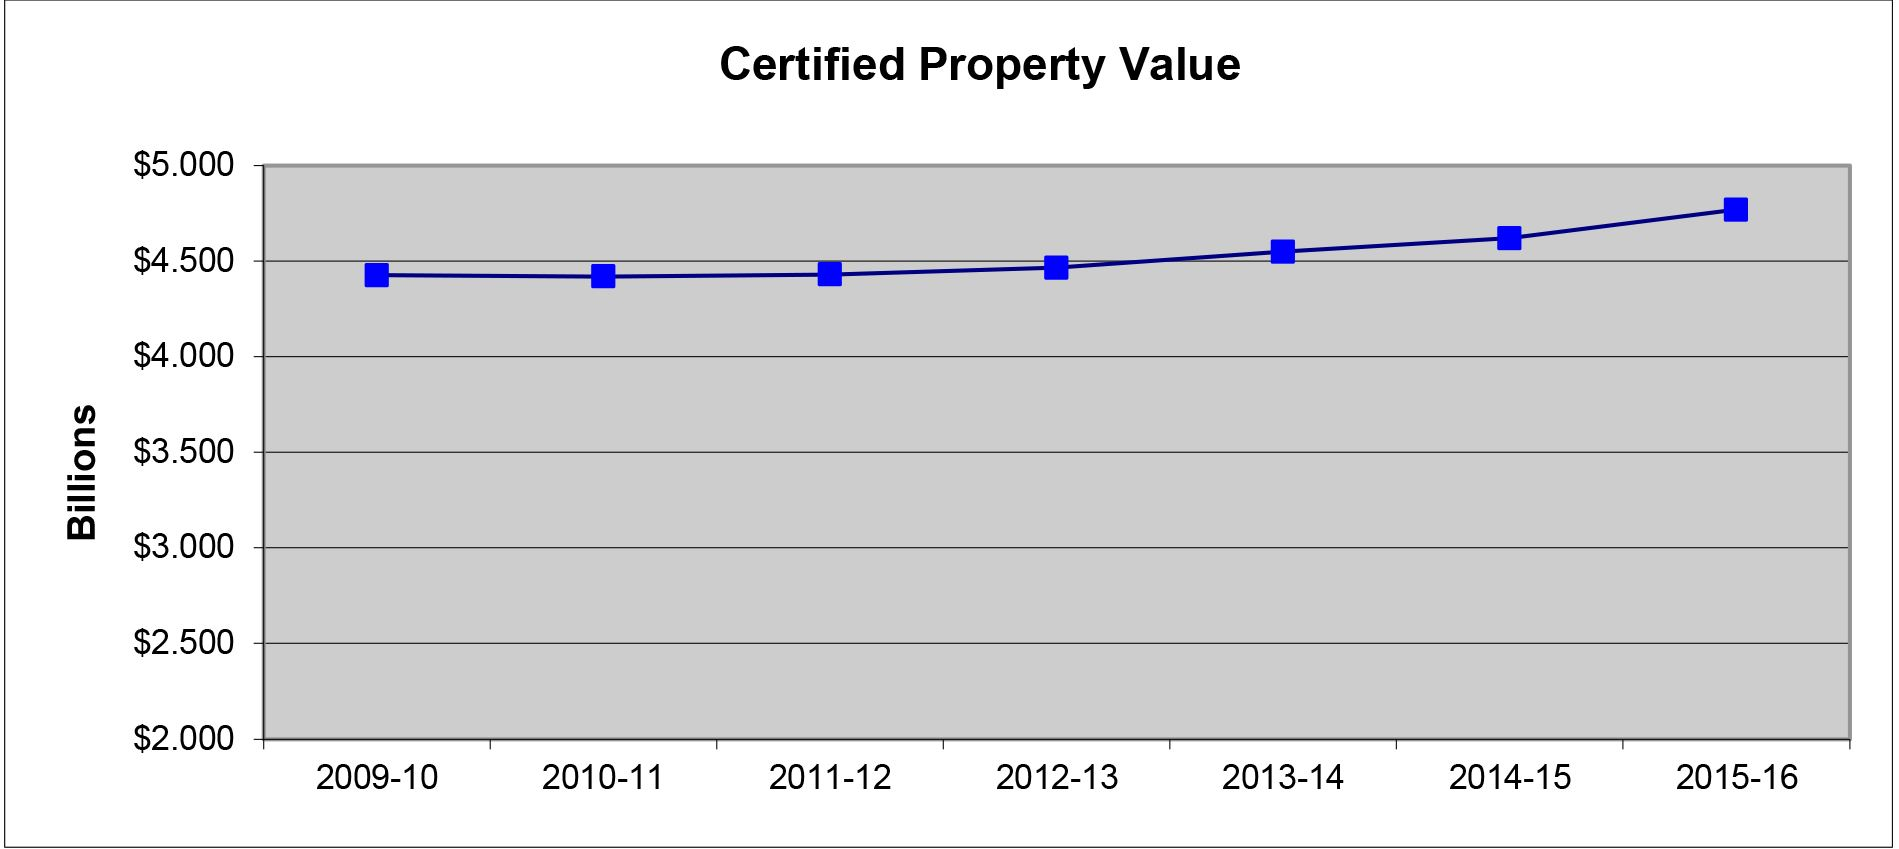 Certified Property Value